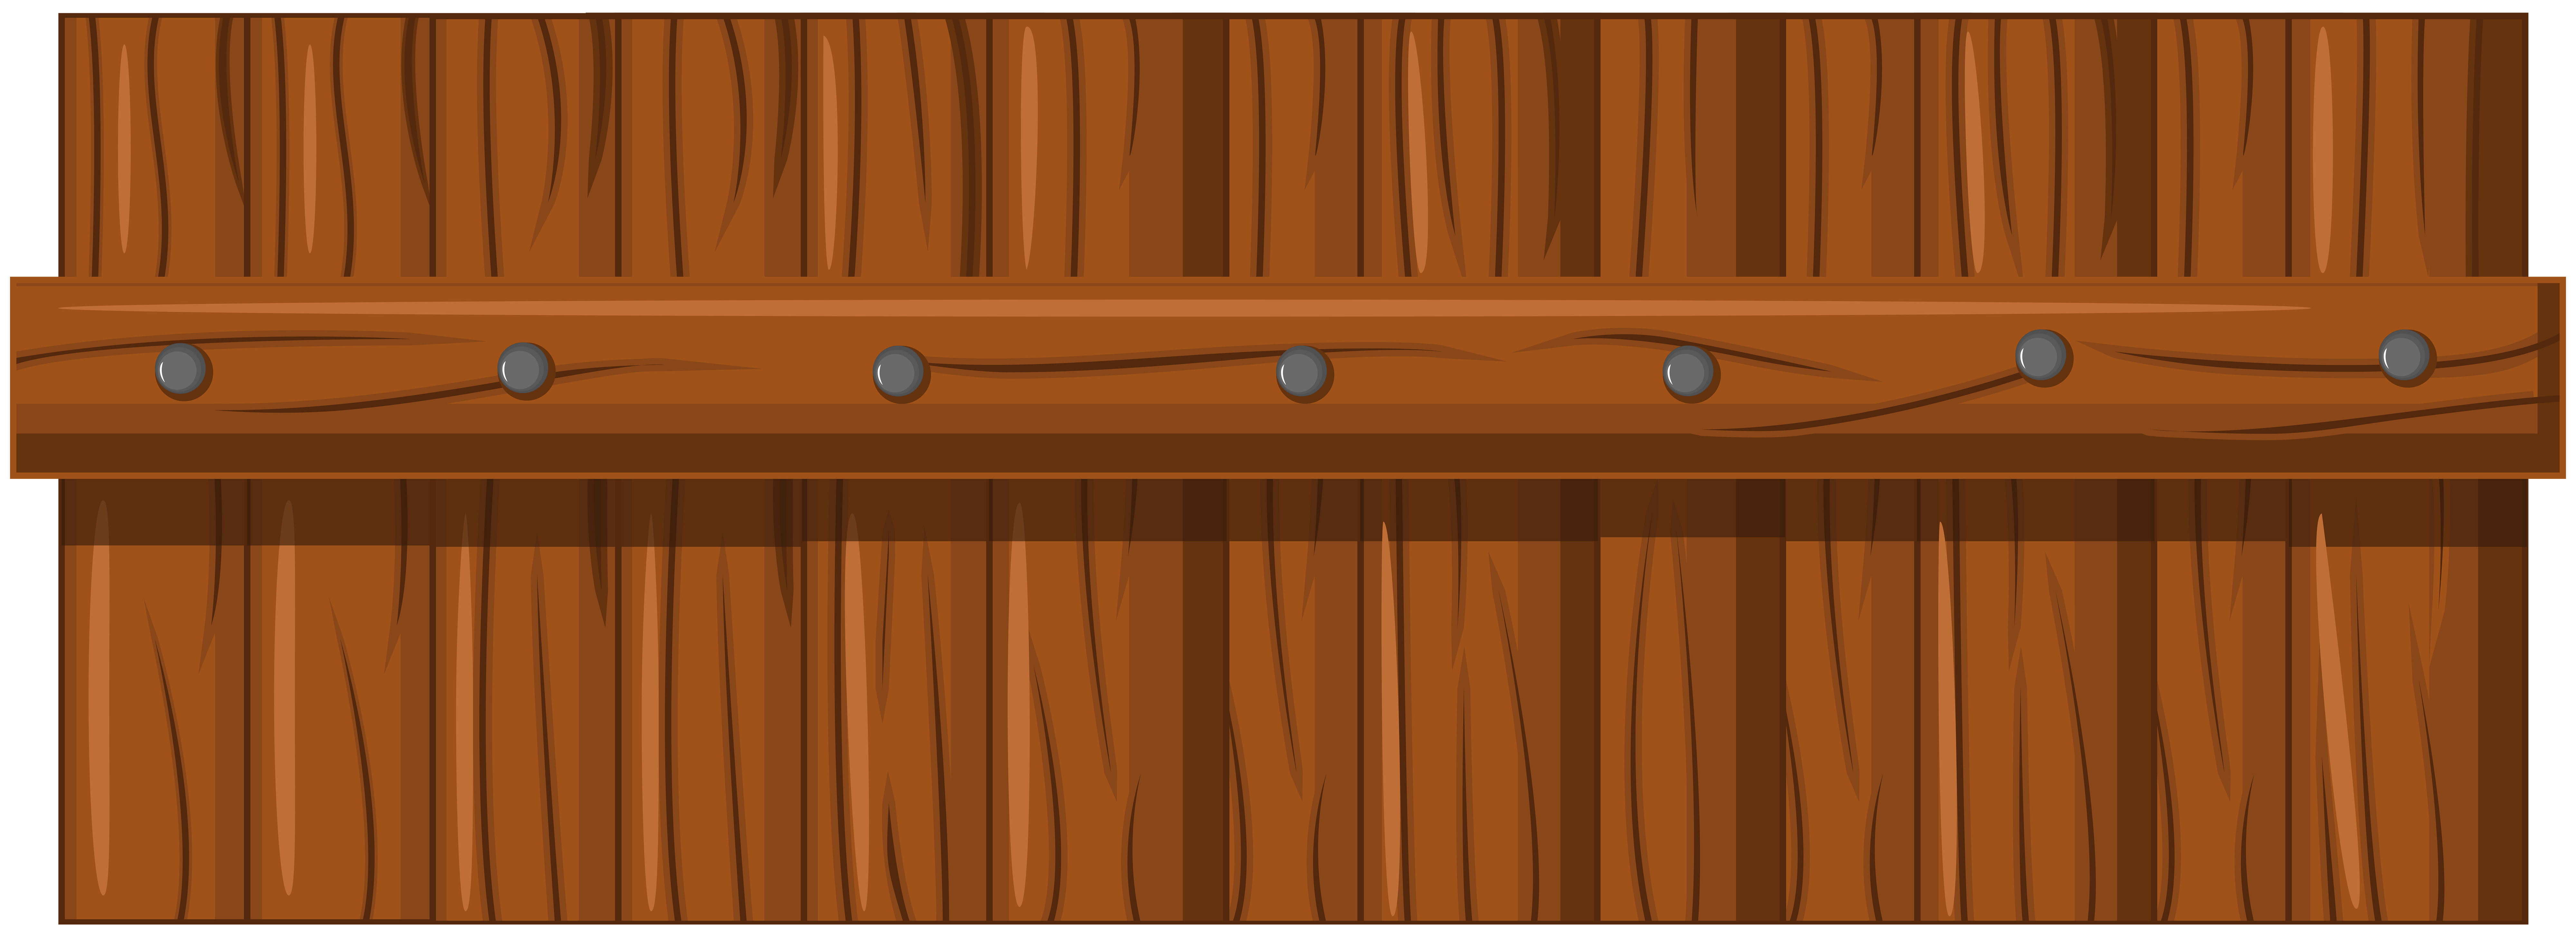 Free Wooden Fence Cliparts, Download Free Clip Art, Free.